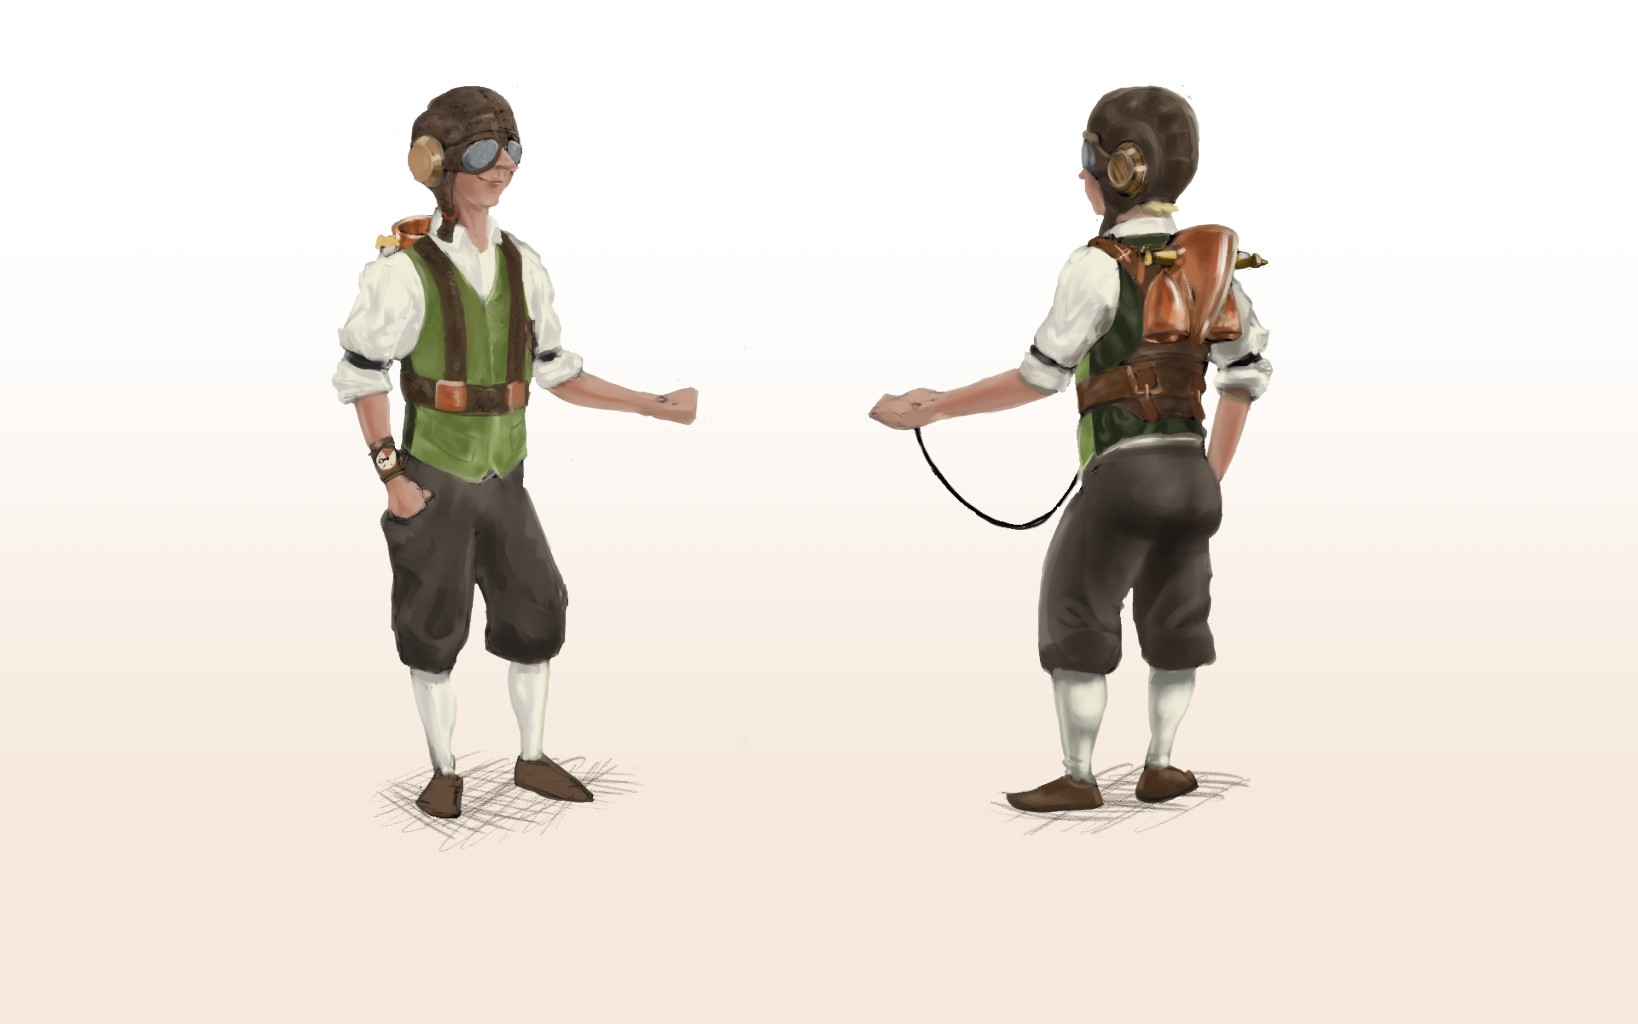 Renders of Front and Rear of Character